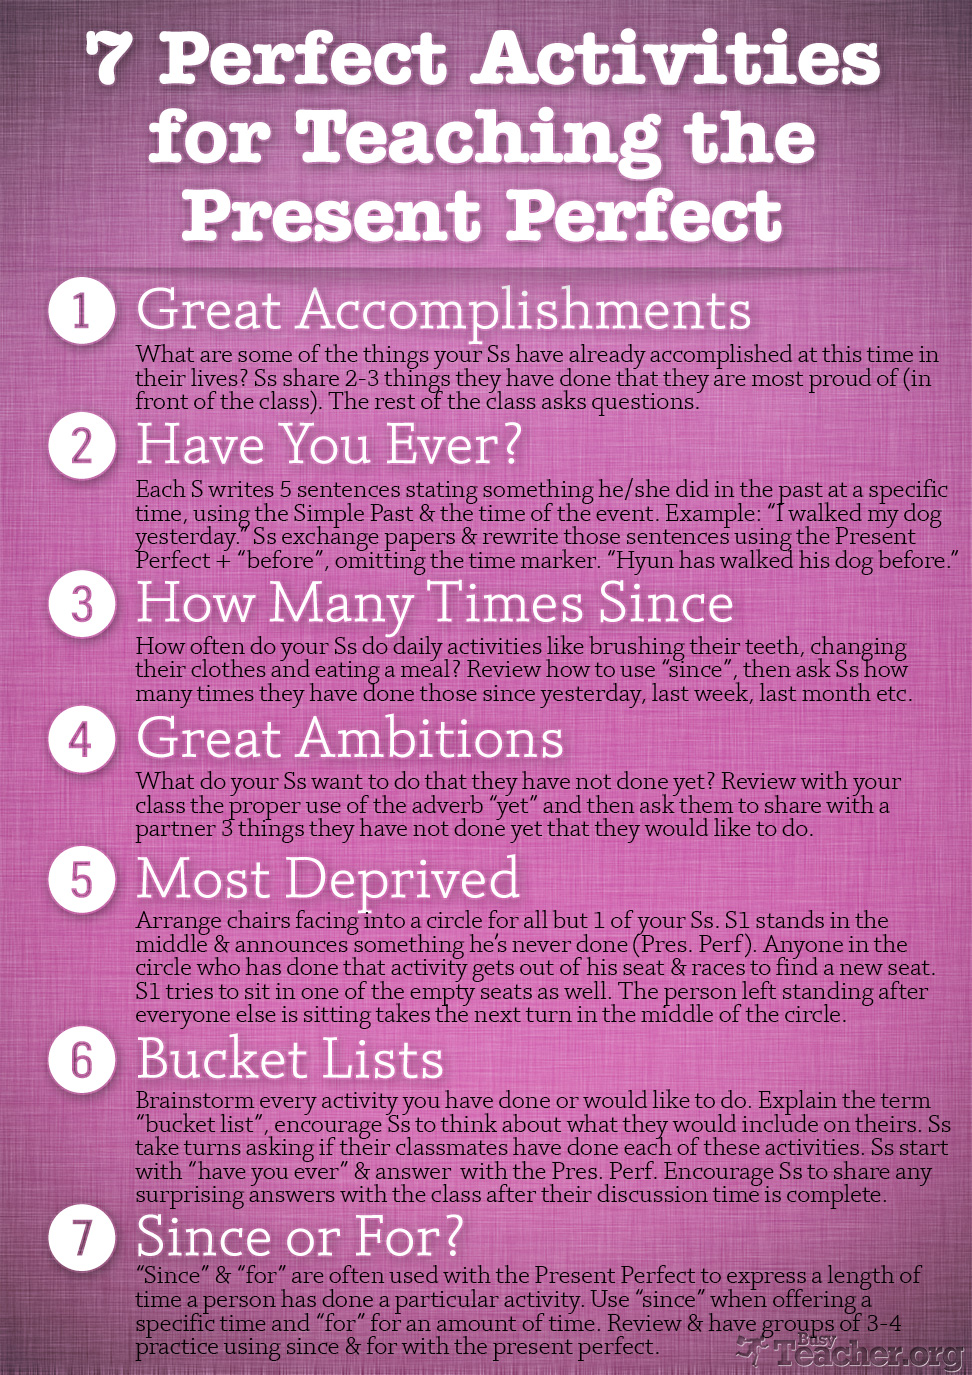 7 Perfect Activities to Teach the Present Perfect: Poster